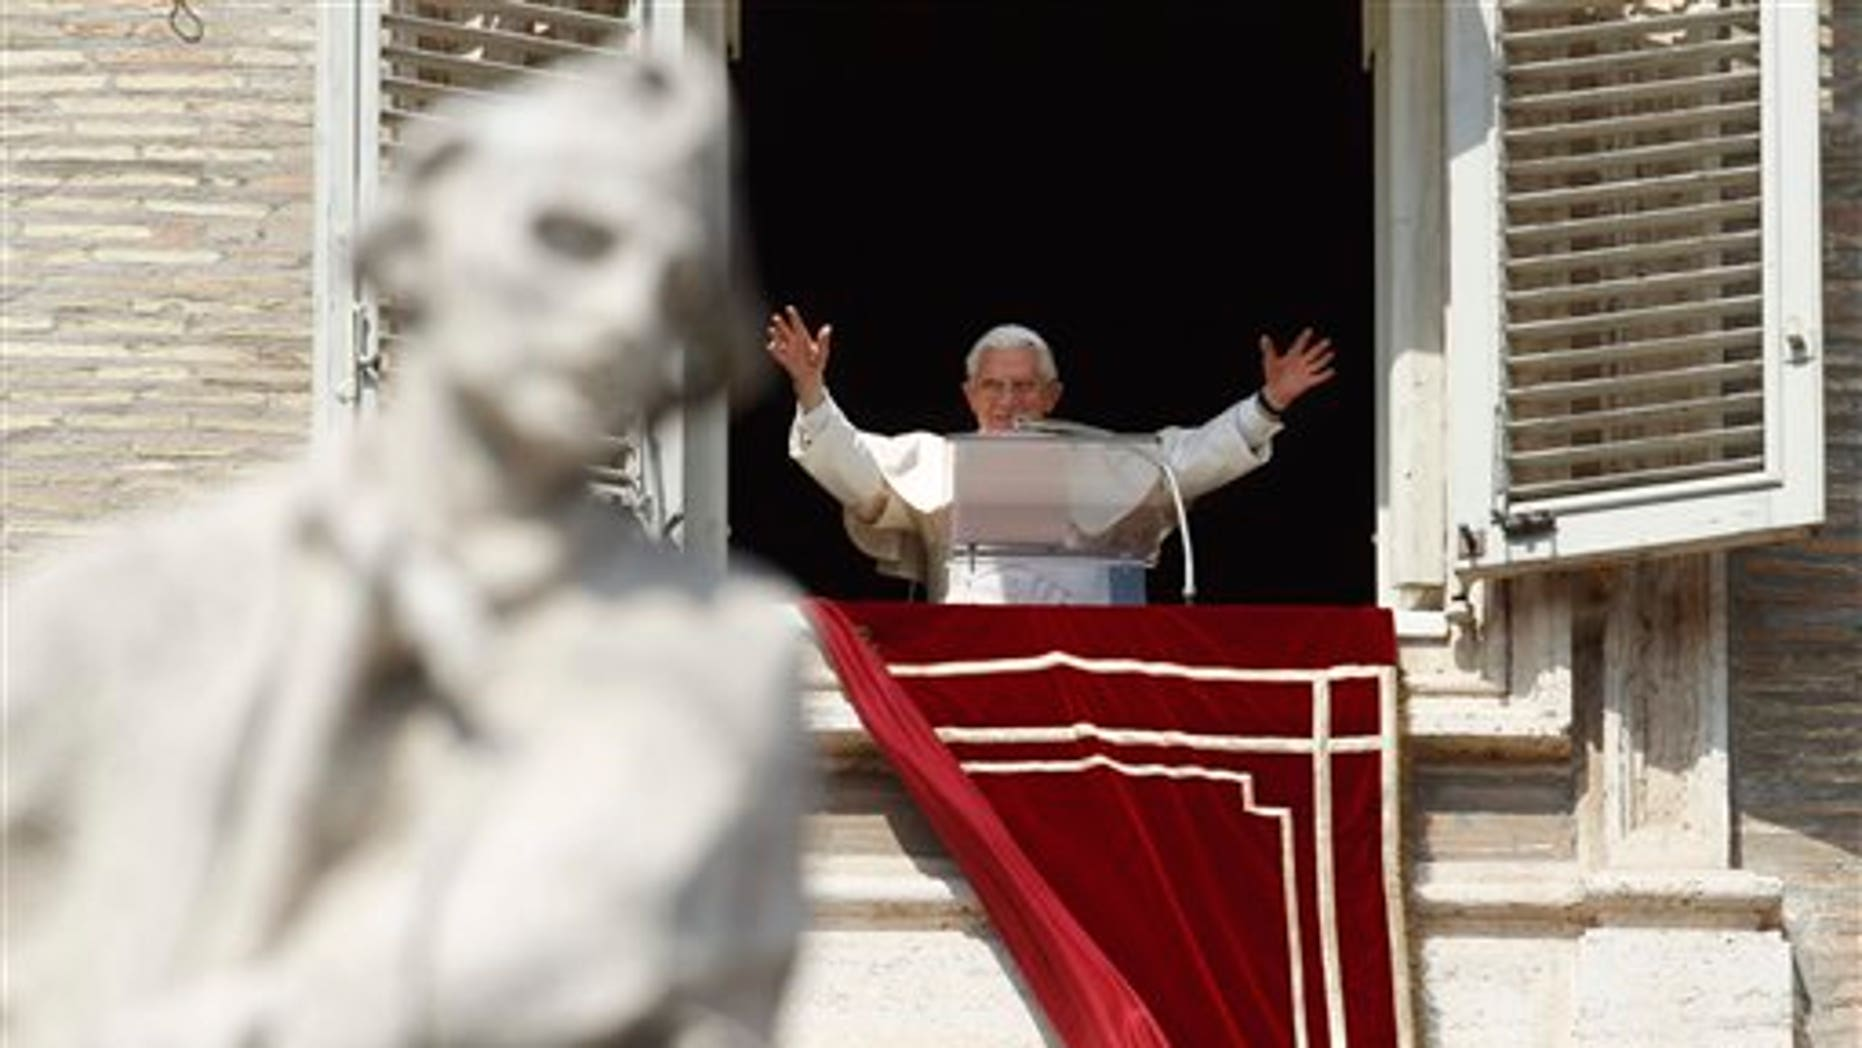 March 18: Pope Benedict XVI greets faithful during the Angelus prayer from his studio window overlooking St. Peter's Square at the Vatican. Pope Benedict XVI has asked for prayers for his upcoming trip to Mexico and Cuba.